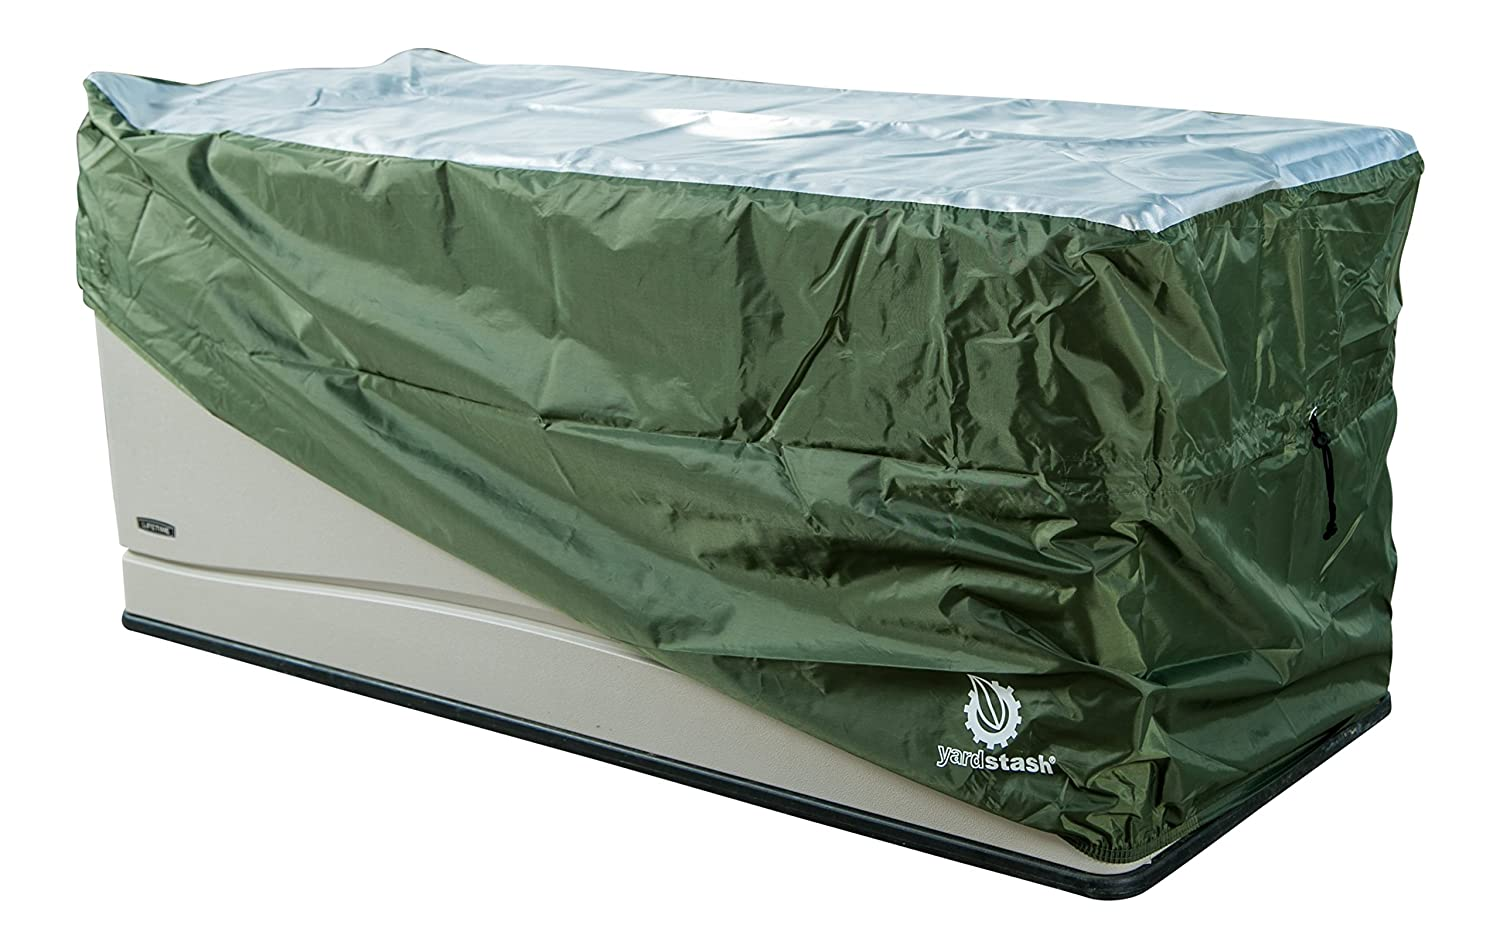 YardStash Deck Box Cover XL to Protect Large Deck Boxes: Lifetime 60012 Extra Large Deck Box Cover Suncast DBW9200 Deck Box Cover Rubbermaid 5E39 Deck Box Cover & Rubbermaid w/Seat Deck Box Cover YSDBOXC01